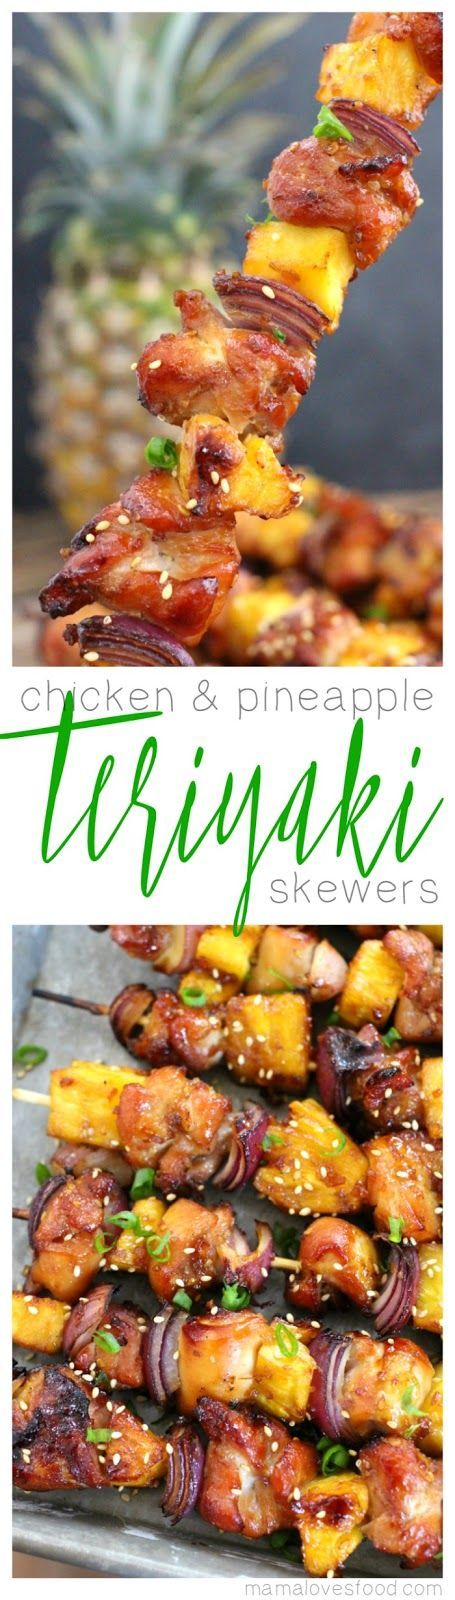 Chicken and Teriyaki Pineapple Skewers Kebab Recipe